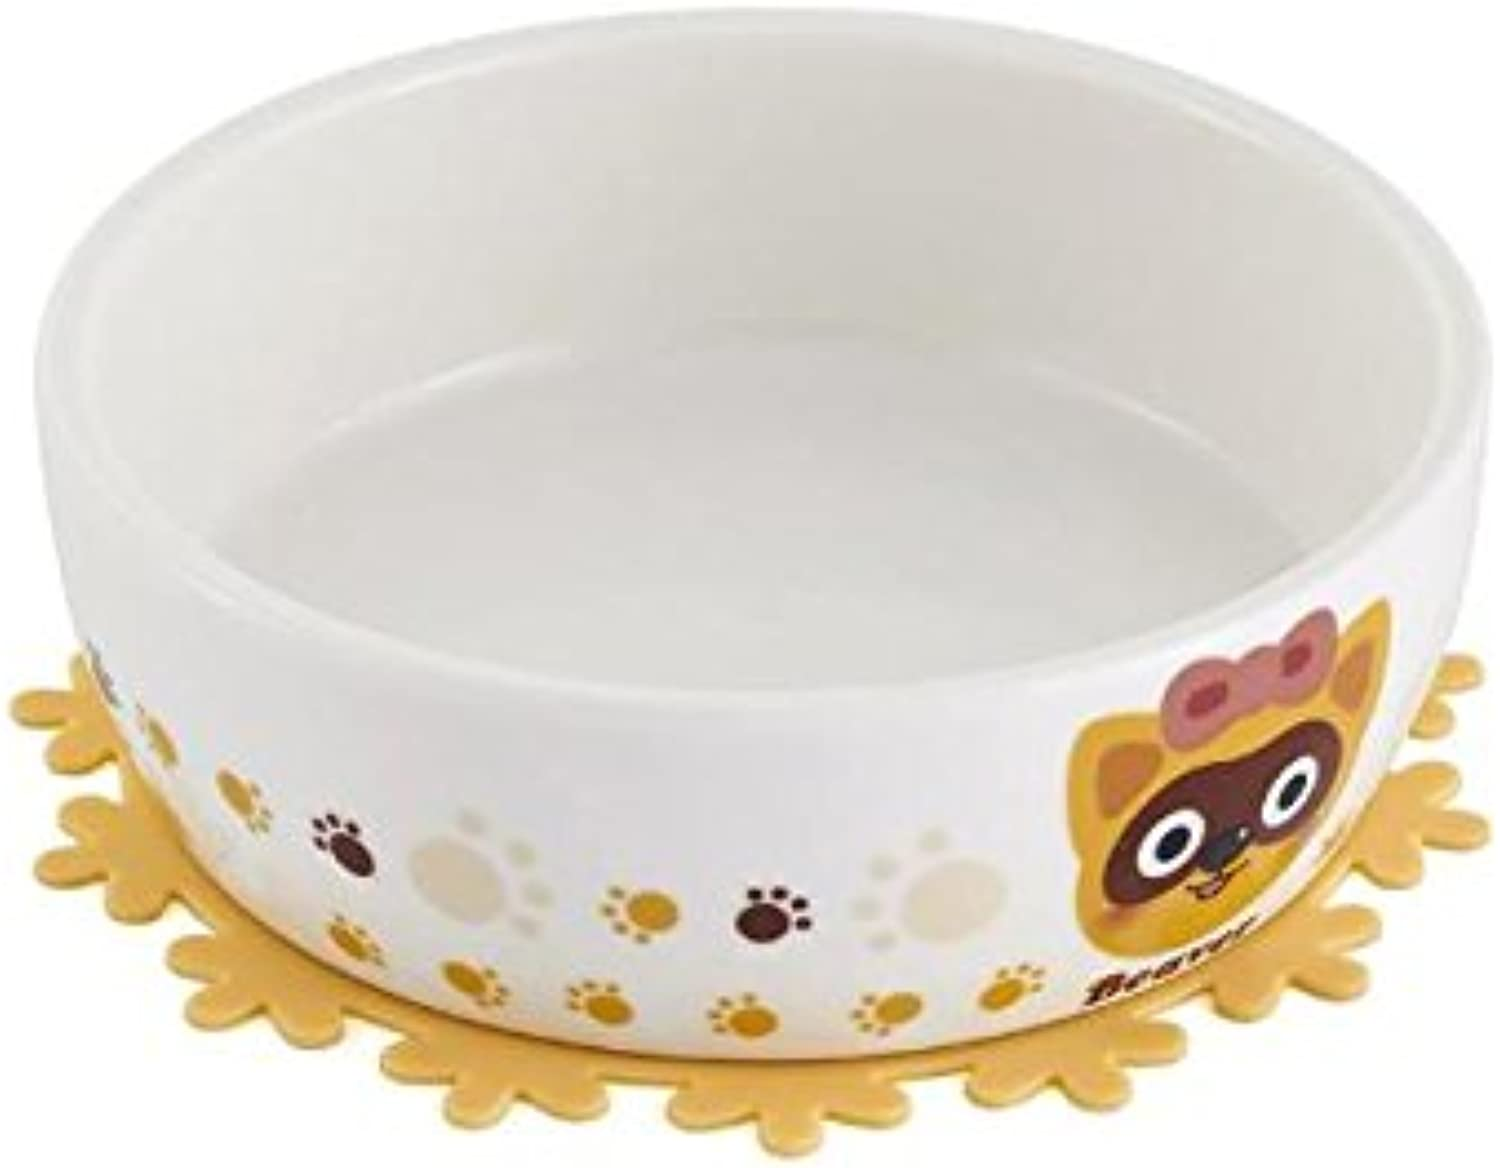 Global Brands Online Ceramic Pet Bowl with Free Placemat for Food and Water Bowls Pet Feeders Two Patterns